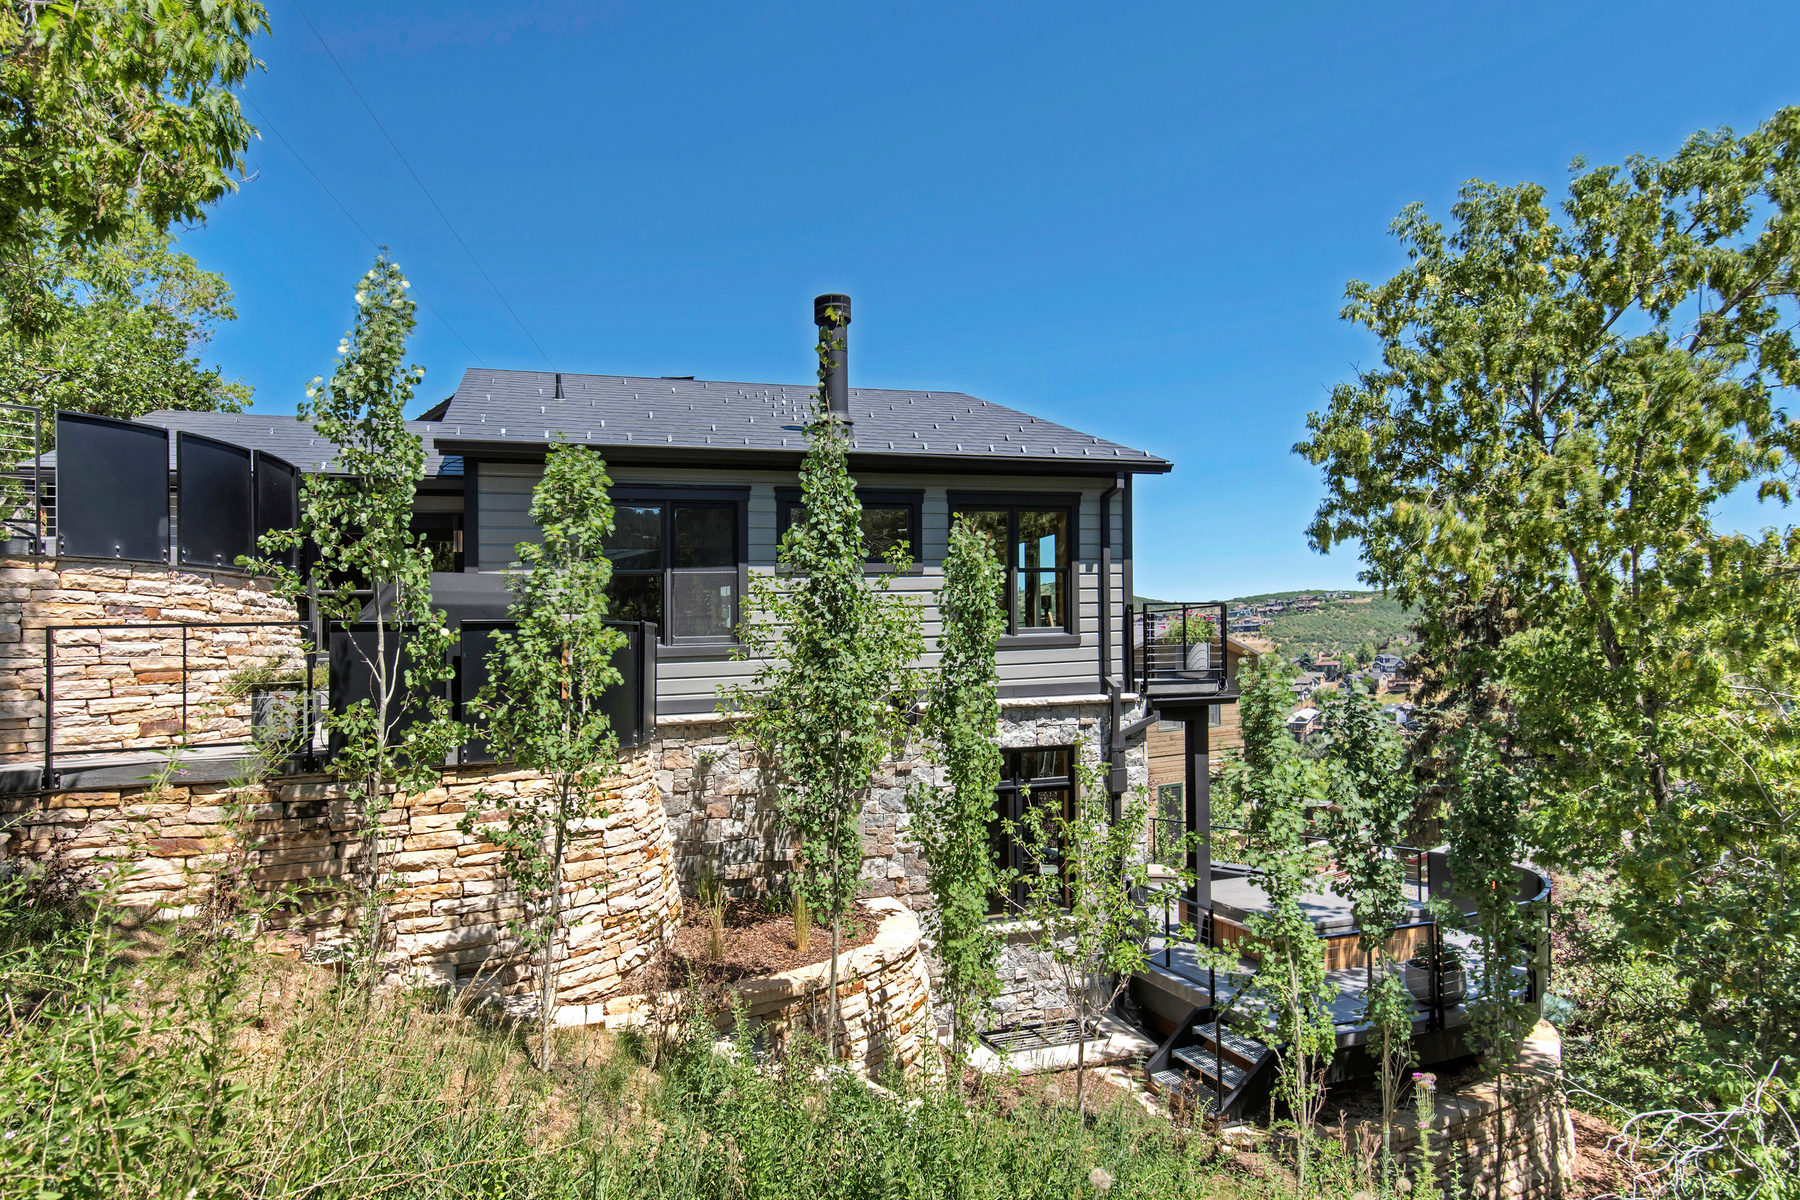 一戸建て のために 売買 アット Stunning Custom Contemporary Design in Old Town 41 Sampson Avenue Park City, ユタ, 84060 アメリカ合衆国